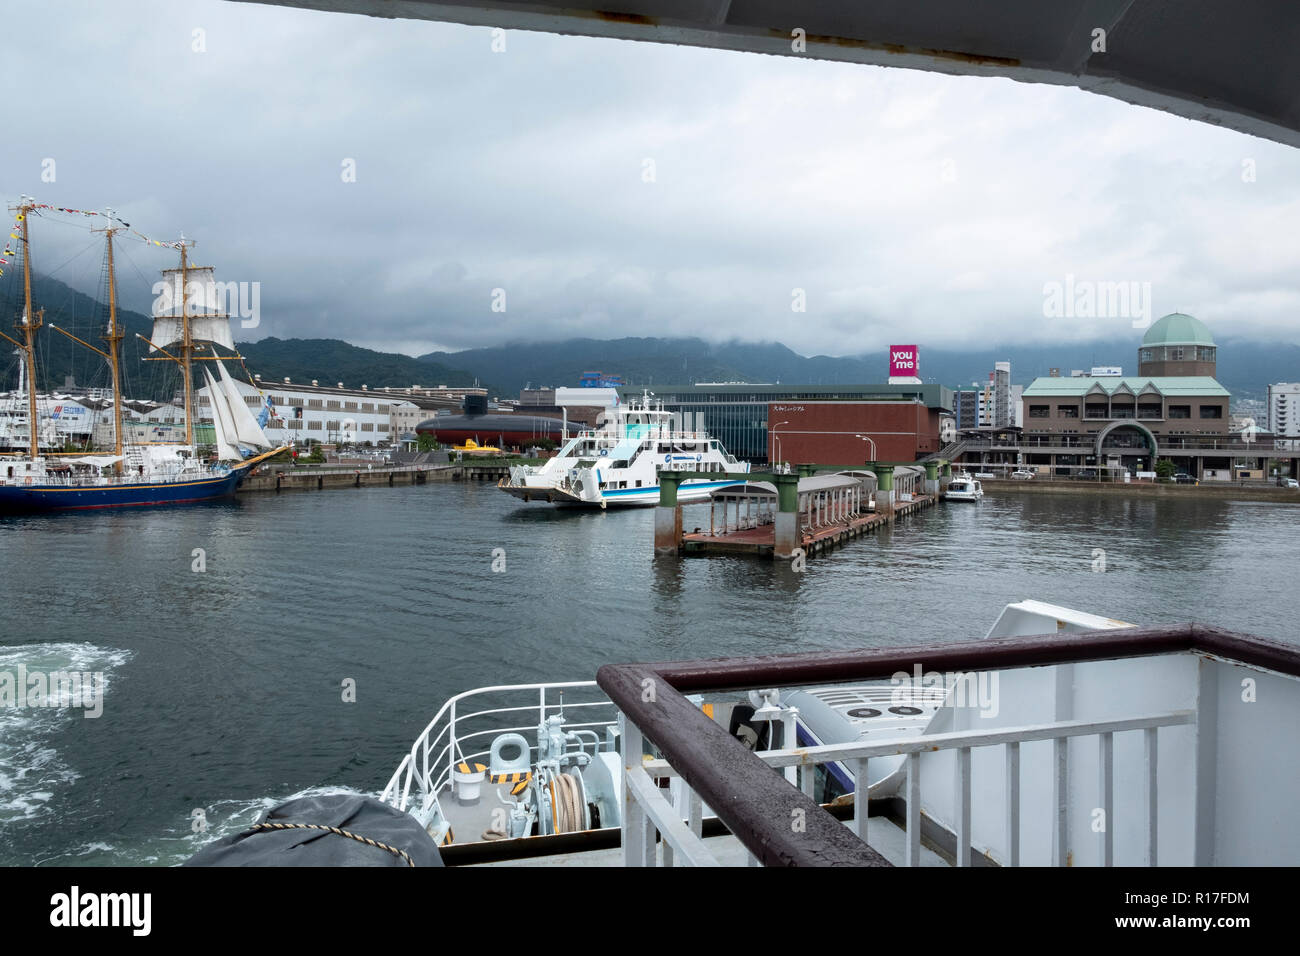 A ferry arriving at the Kure port in Hiroshima Prefecture, Japan Stock Photo